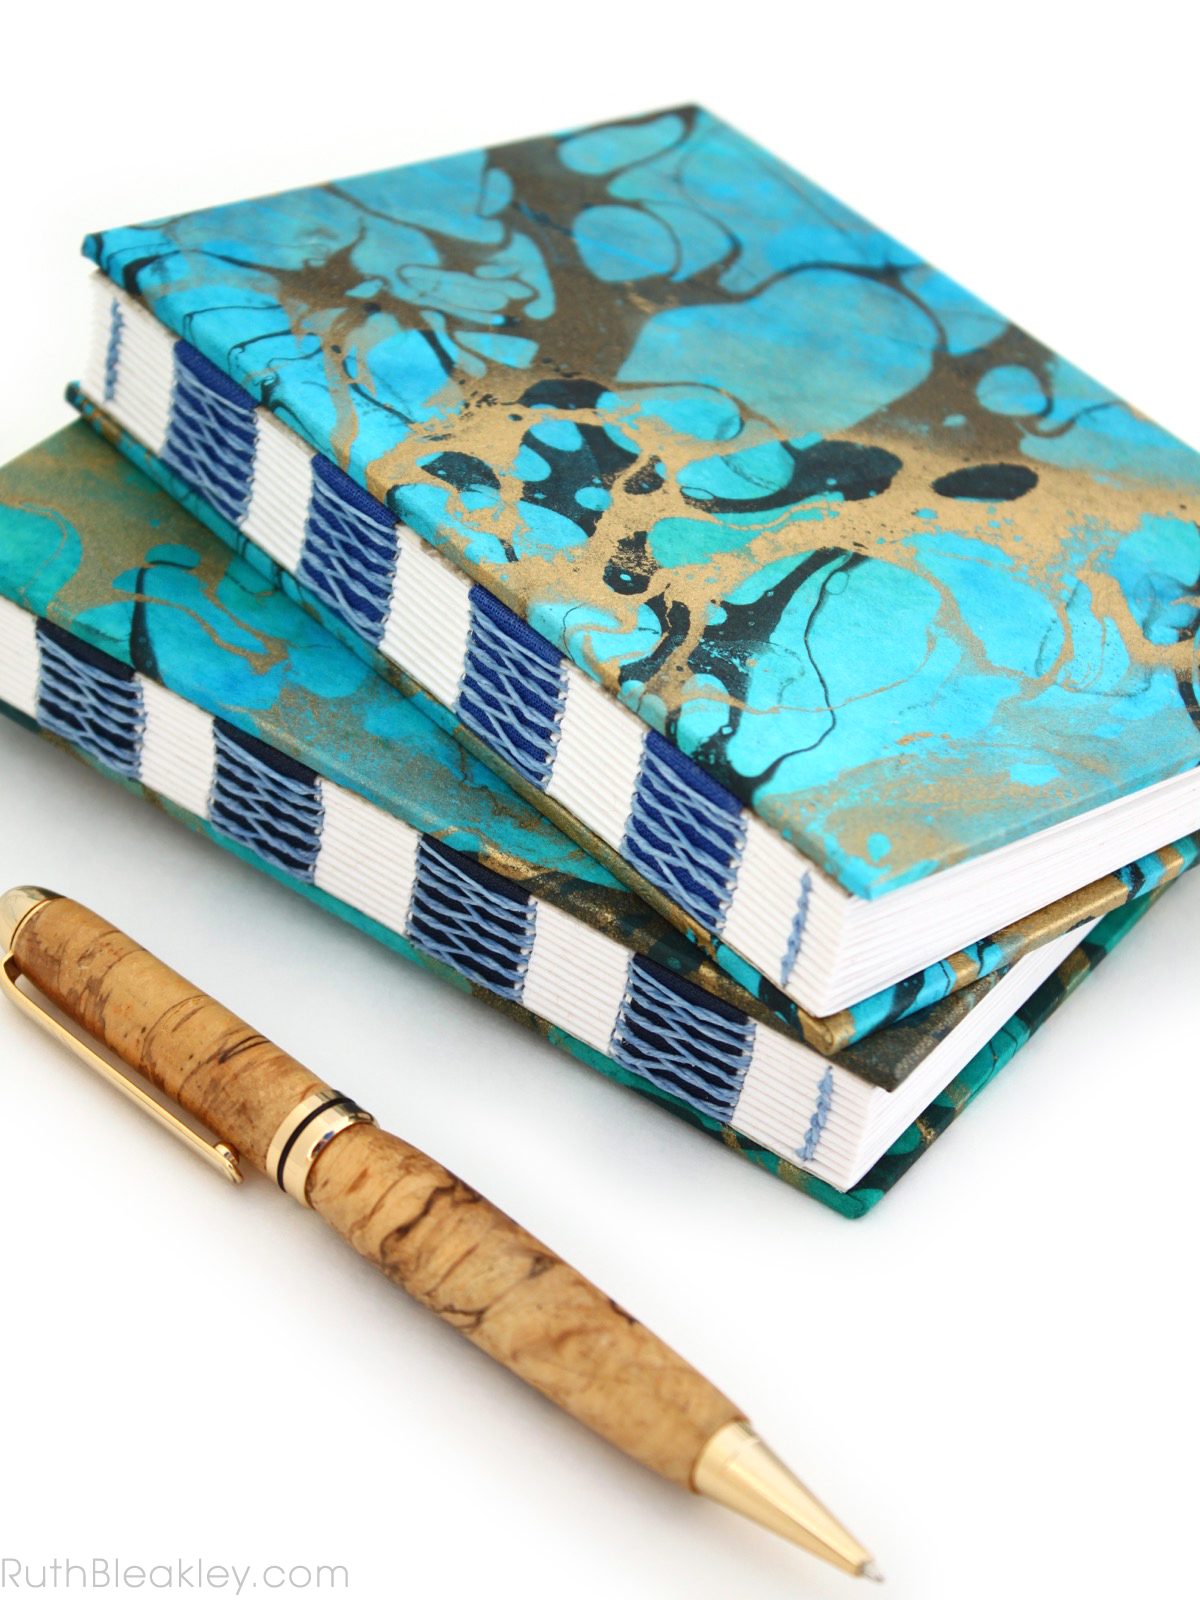 Blue and Gold Marbled Unlined Journal by book artist Ruth Bleakley - 15